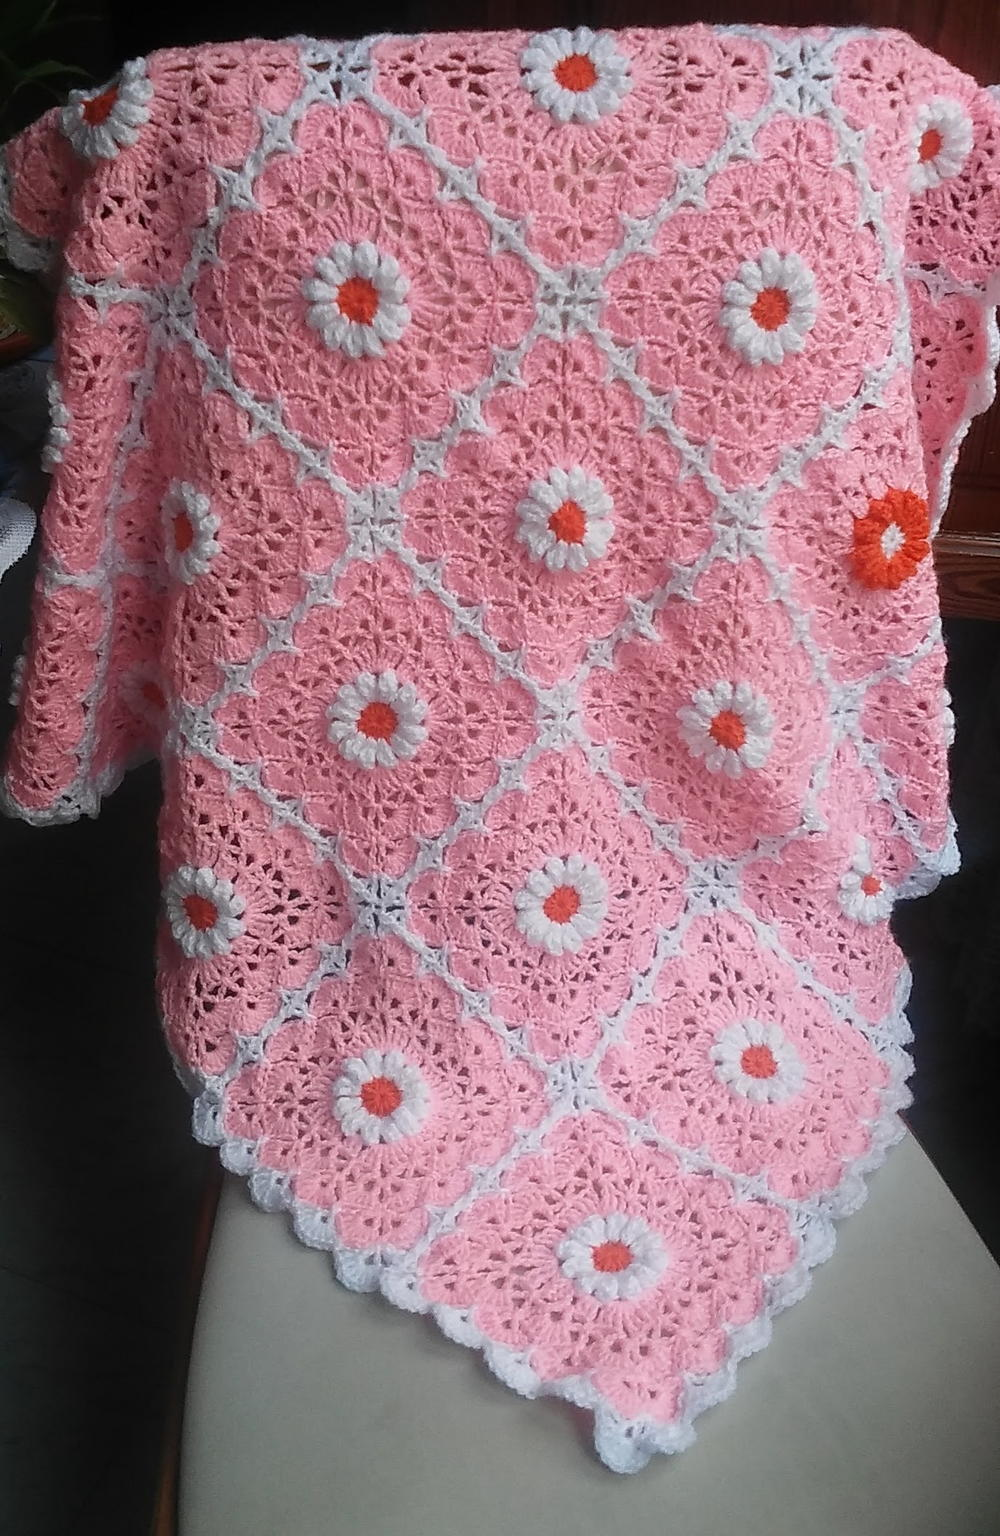 Pink Daisy Crocheted Baby Blanket | FaveCrafts.com